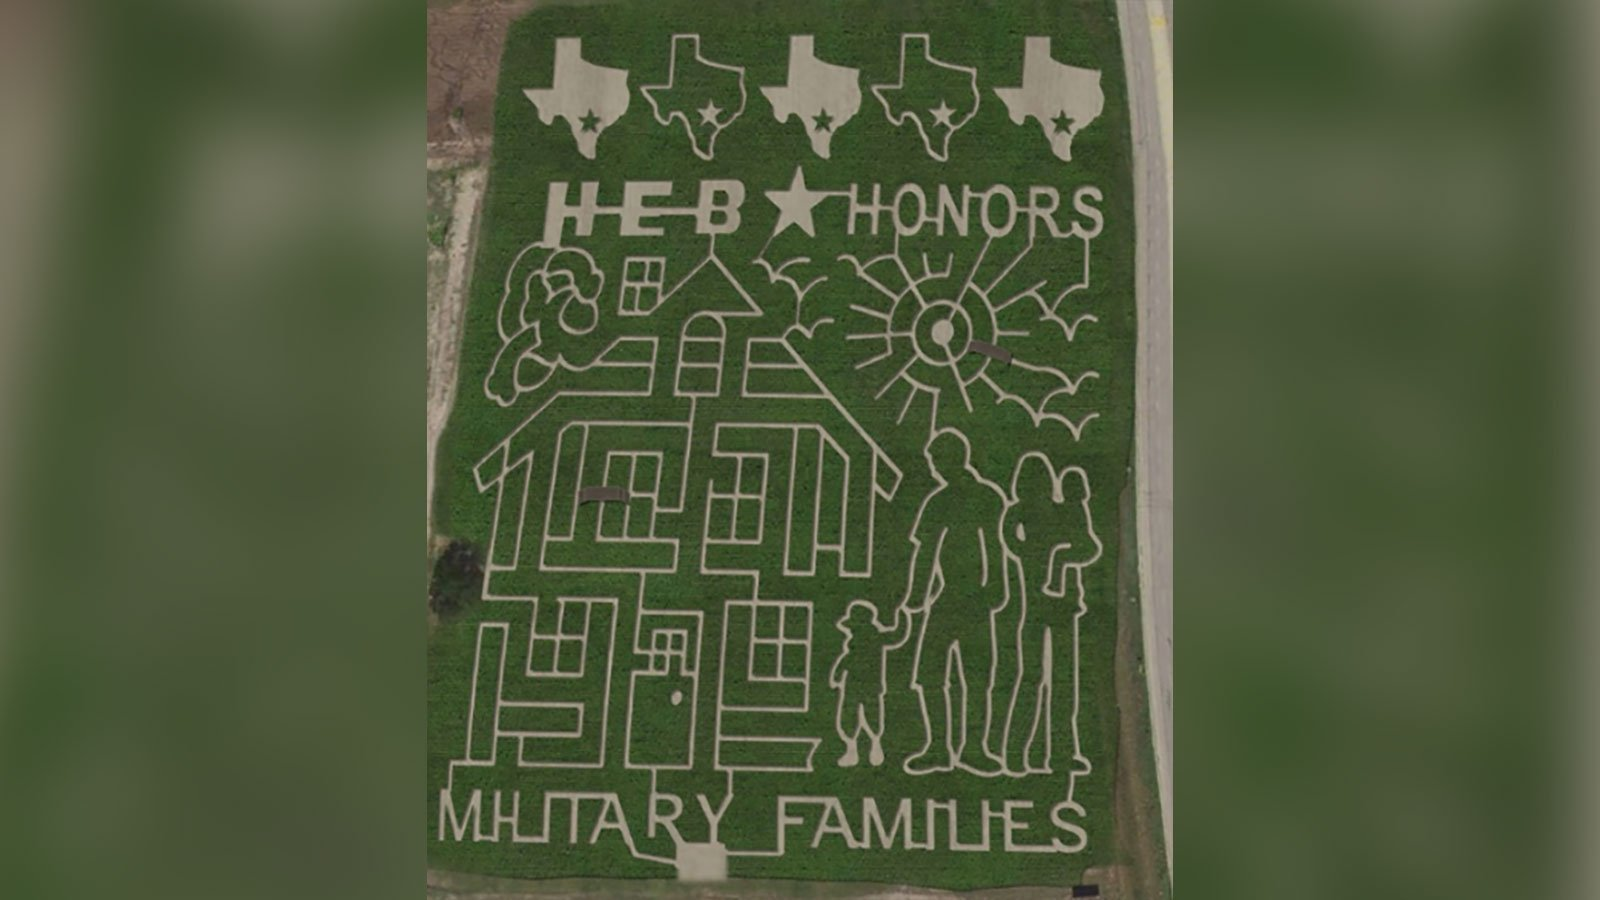 This giant Texas corn maze honors military families